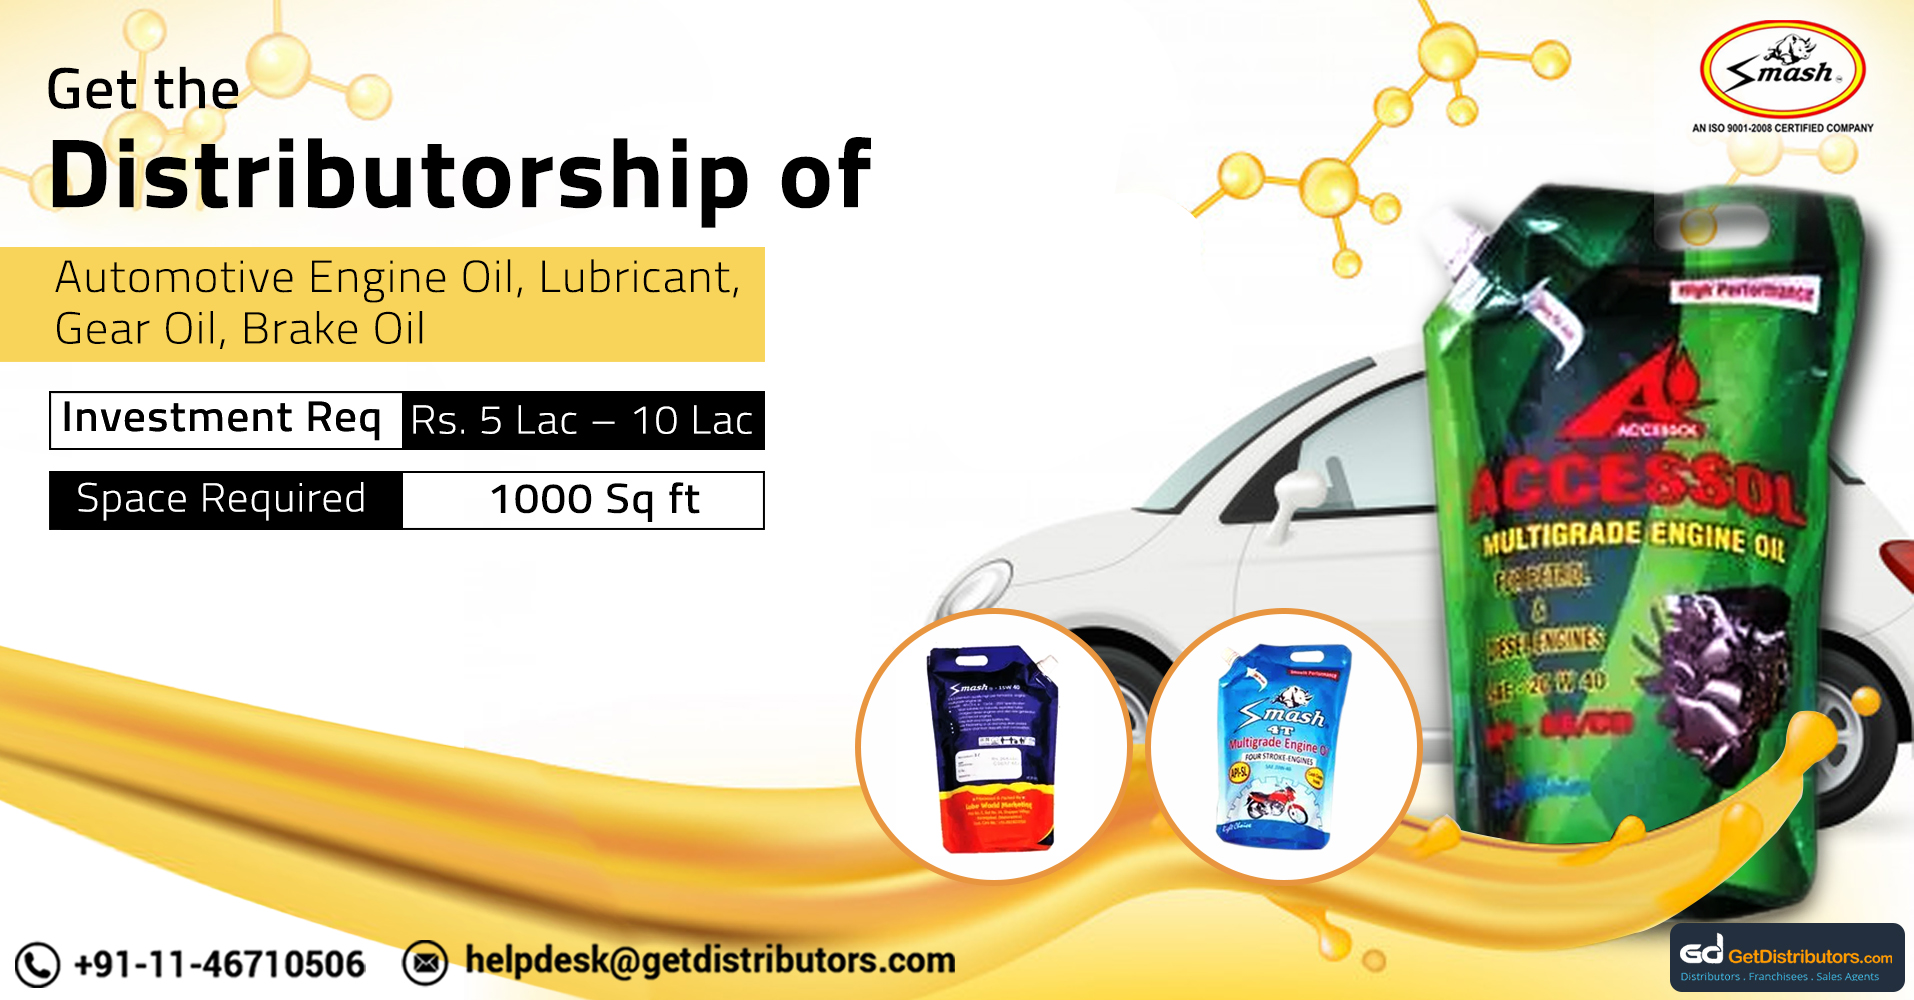 Best Quality Automobile Fluids At Reasonable Prices